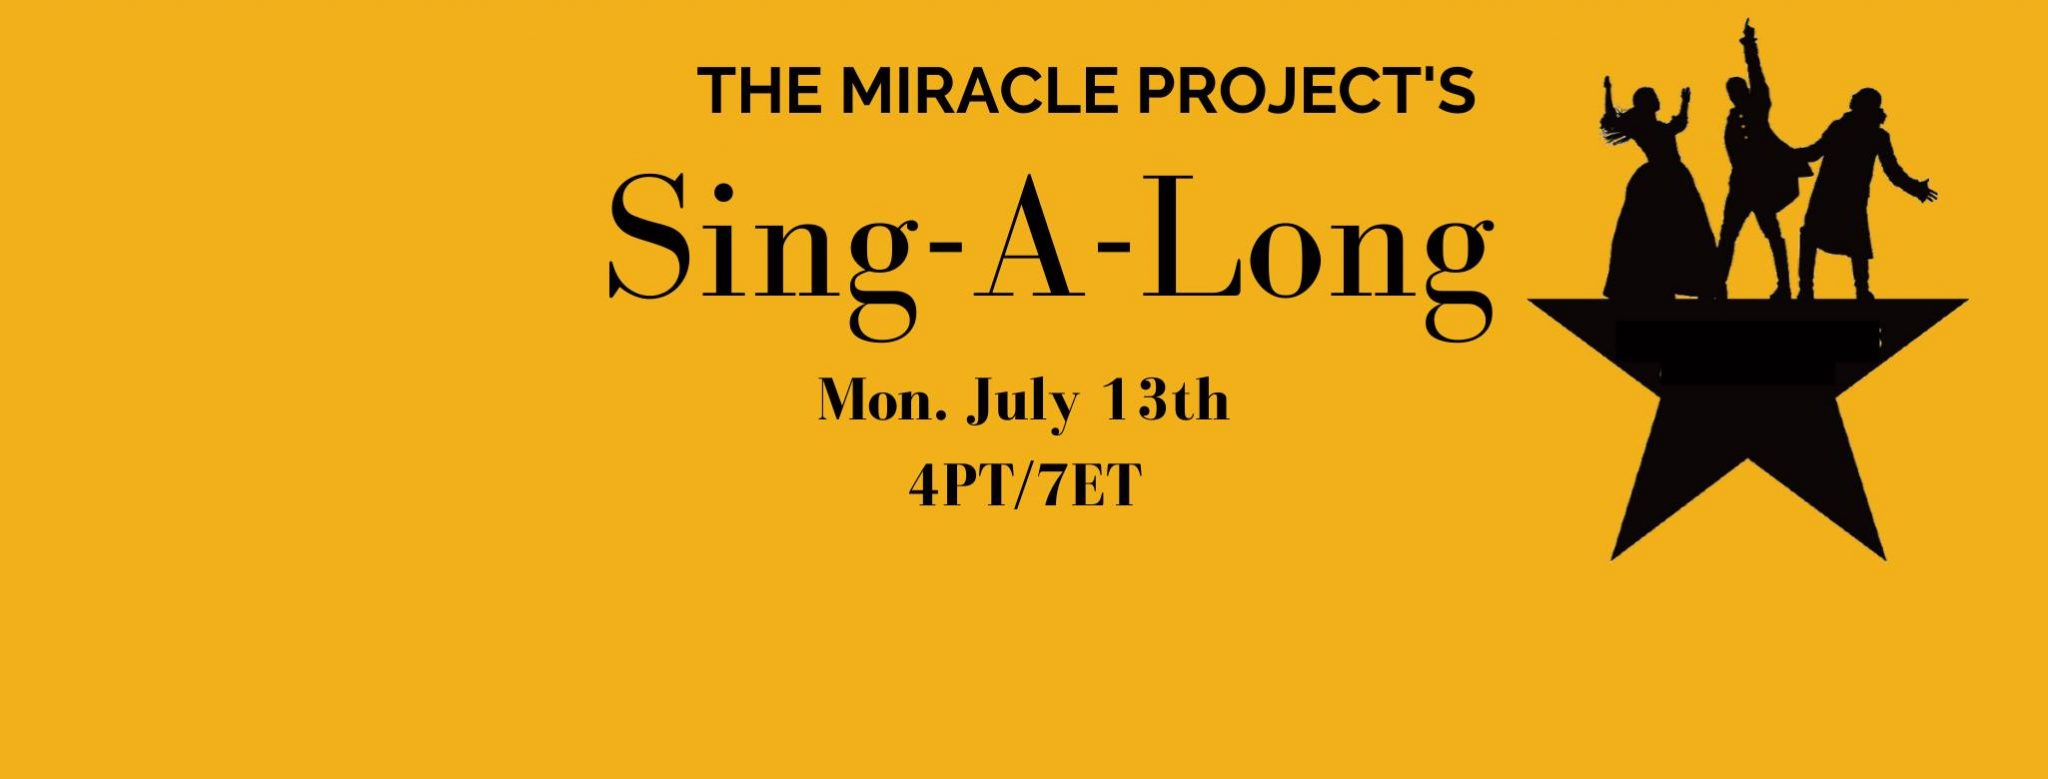 The Miracle Project Sing Along